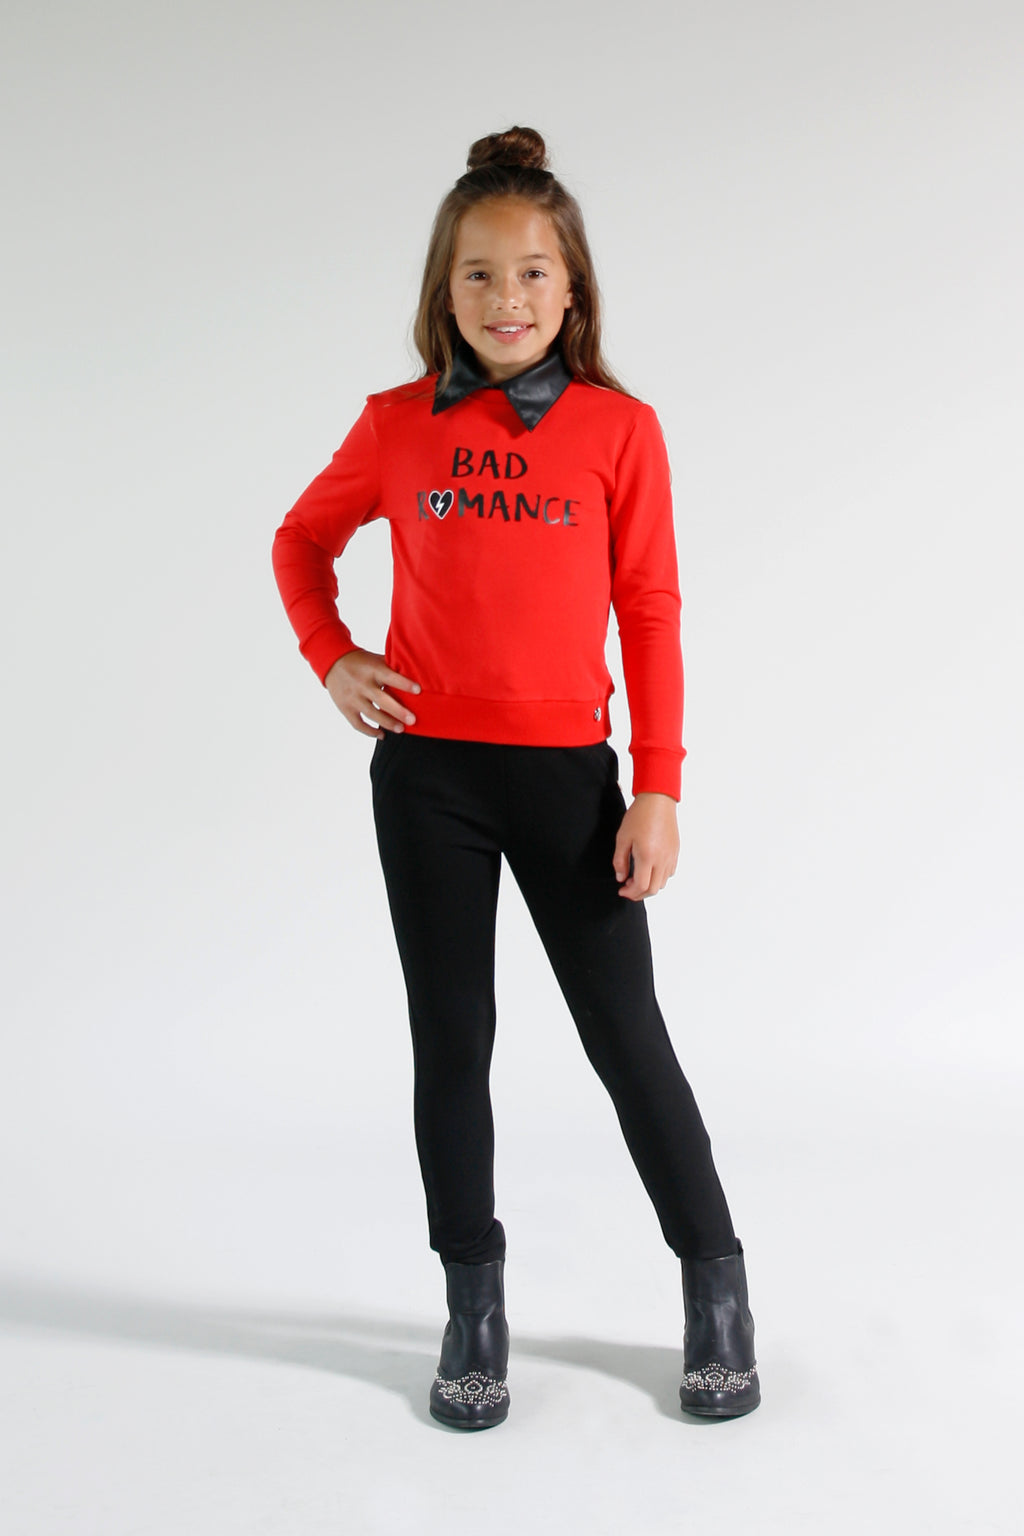 Jacky Girls meisjeskleding sweater Bad Romance rood 116 128 140 152 164 176